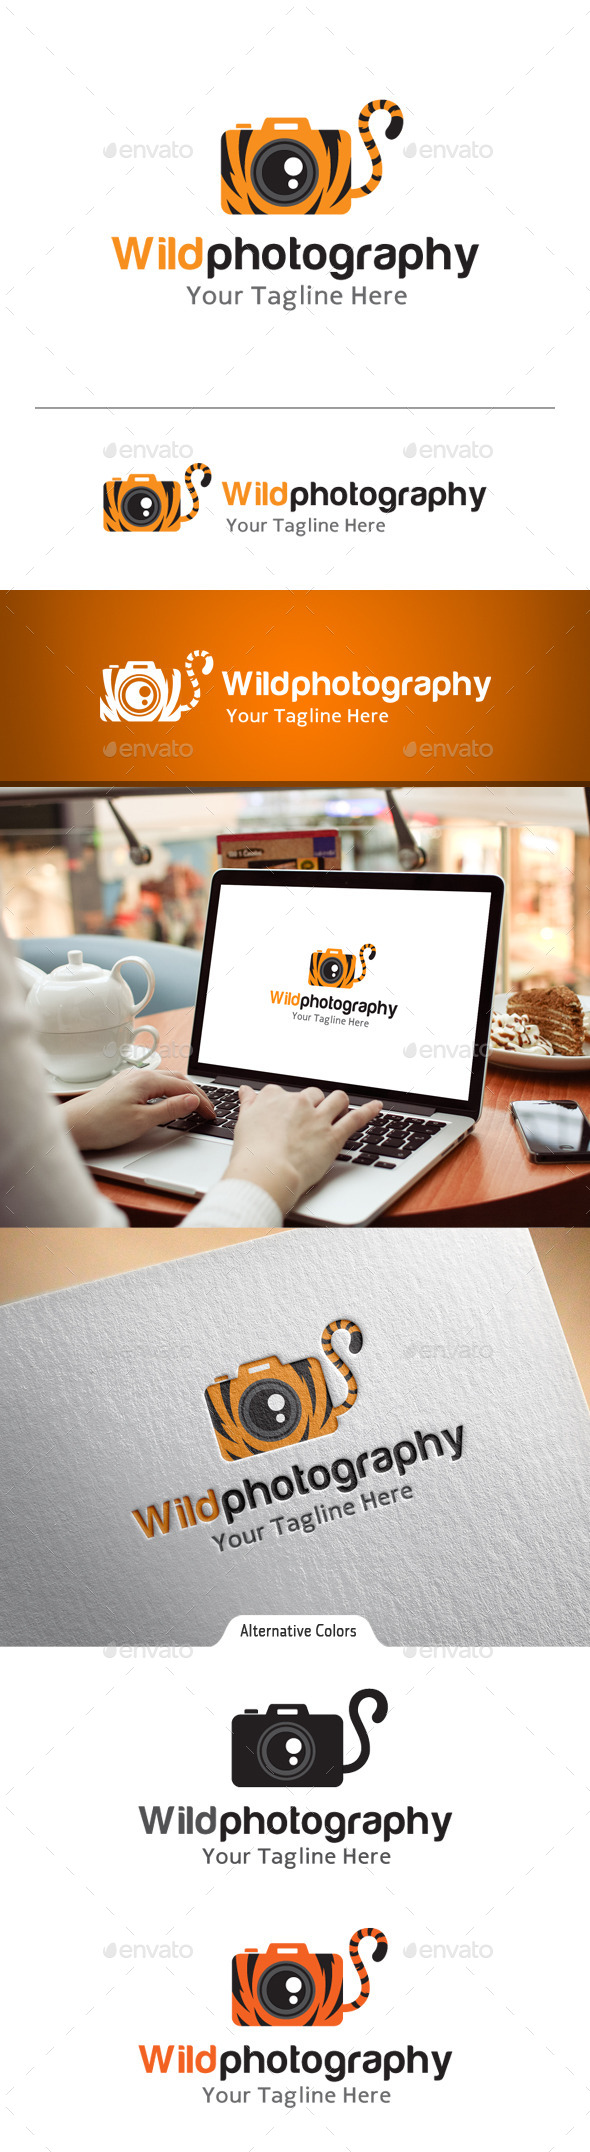 GraphicRiver Wild Photography Logo 10863249